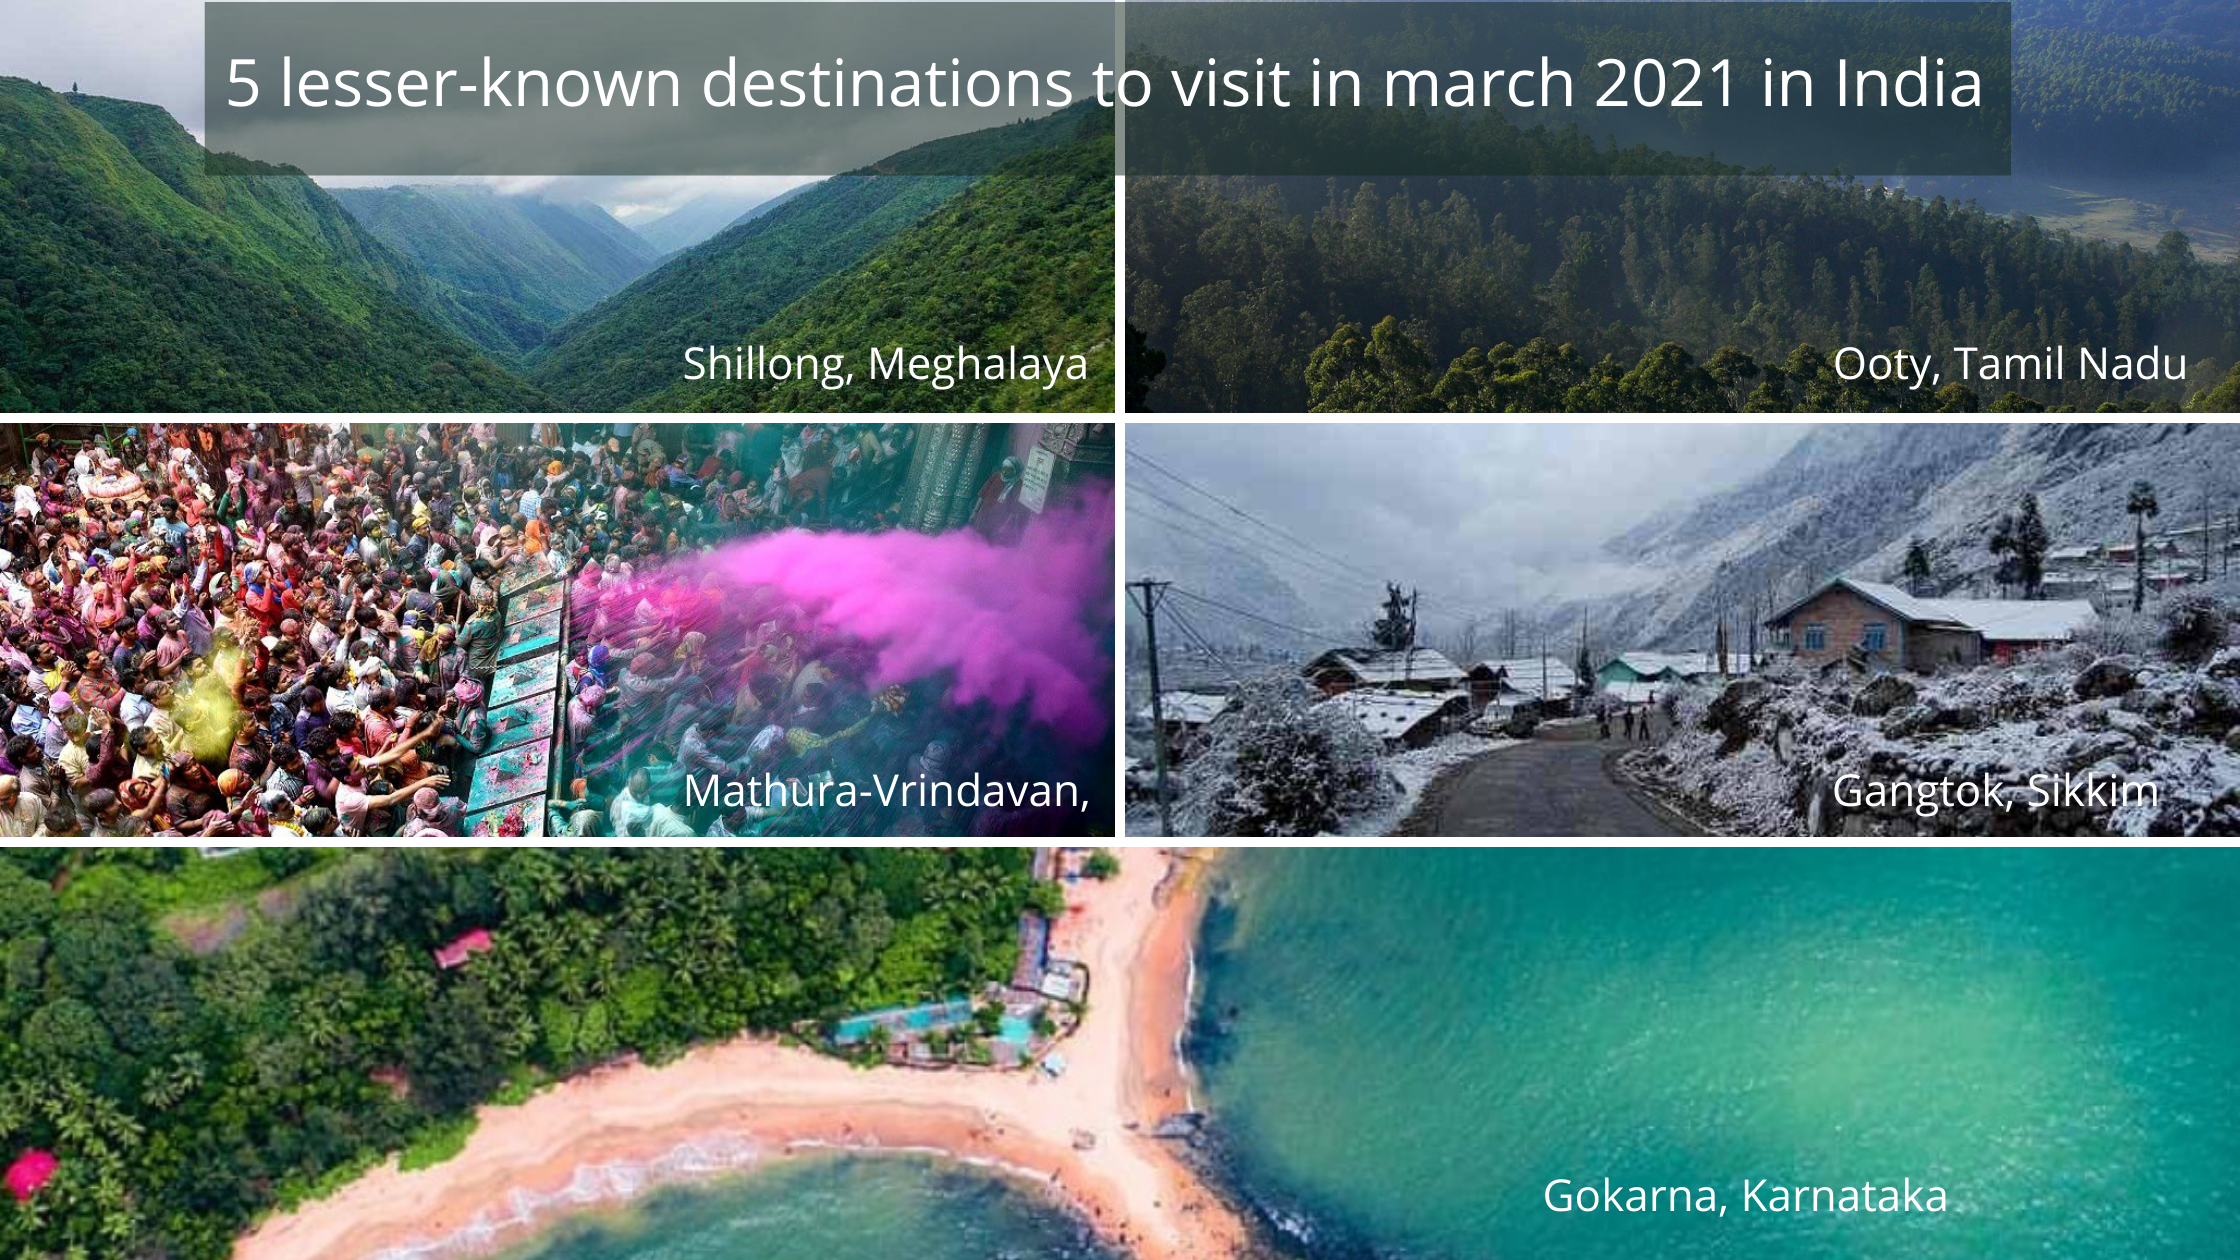 5 lesser known destinations to visit in march 2021 in India